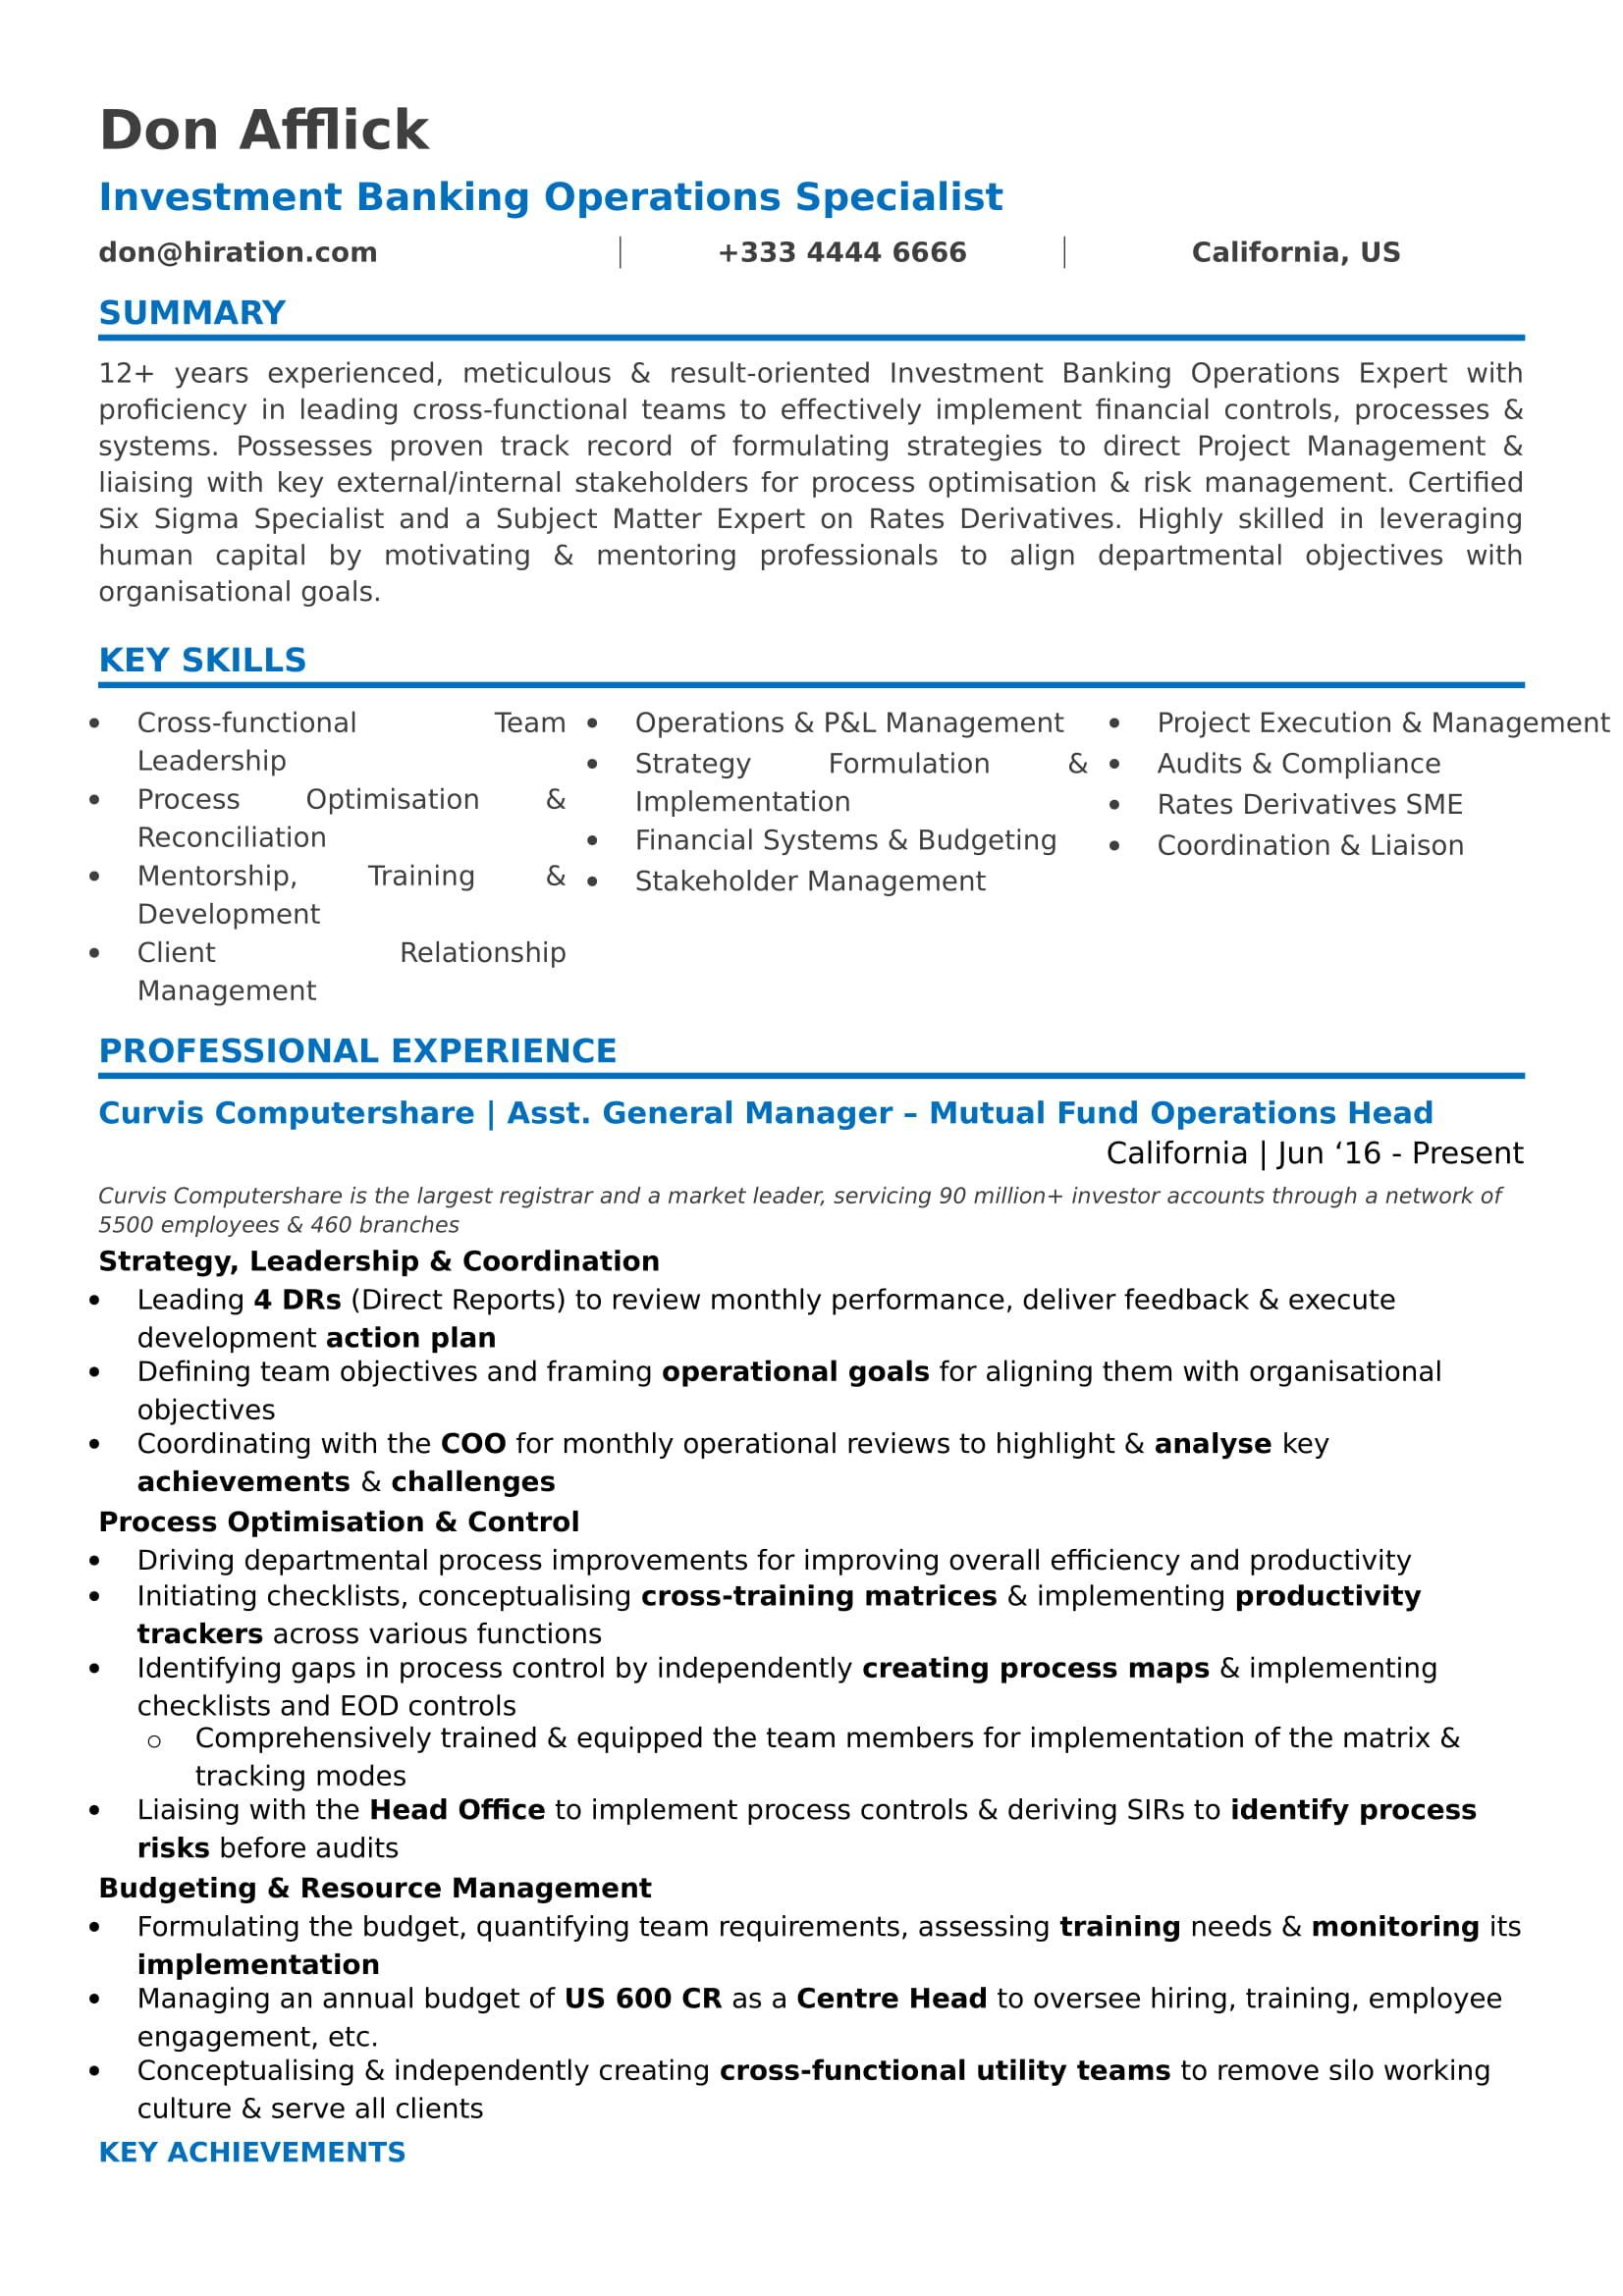 career change resume guide to for overview summary hiration rohit mahagaonkar cv rn nurse Resume Resume Overview Summary